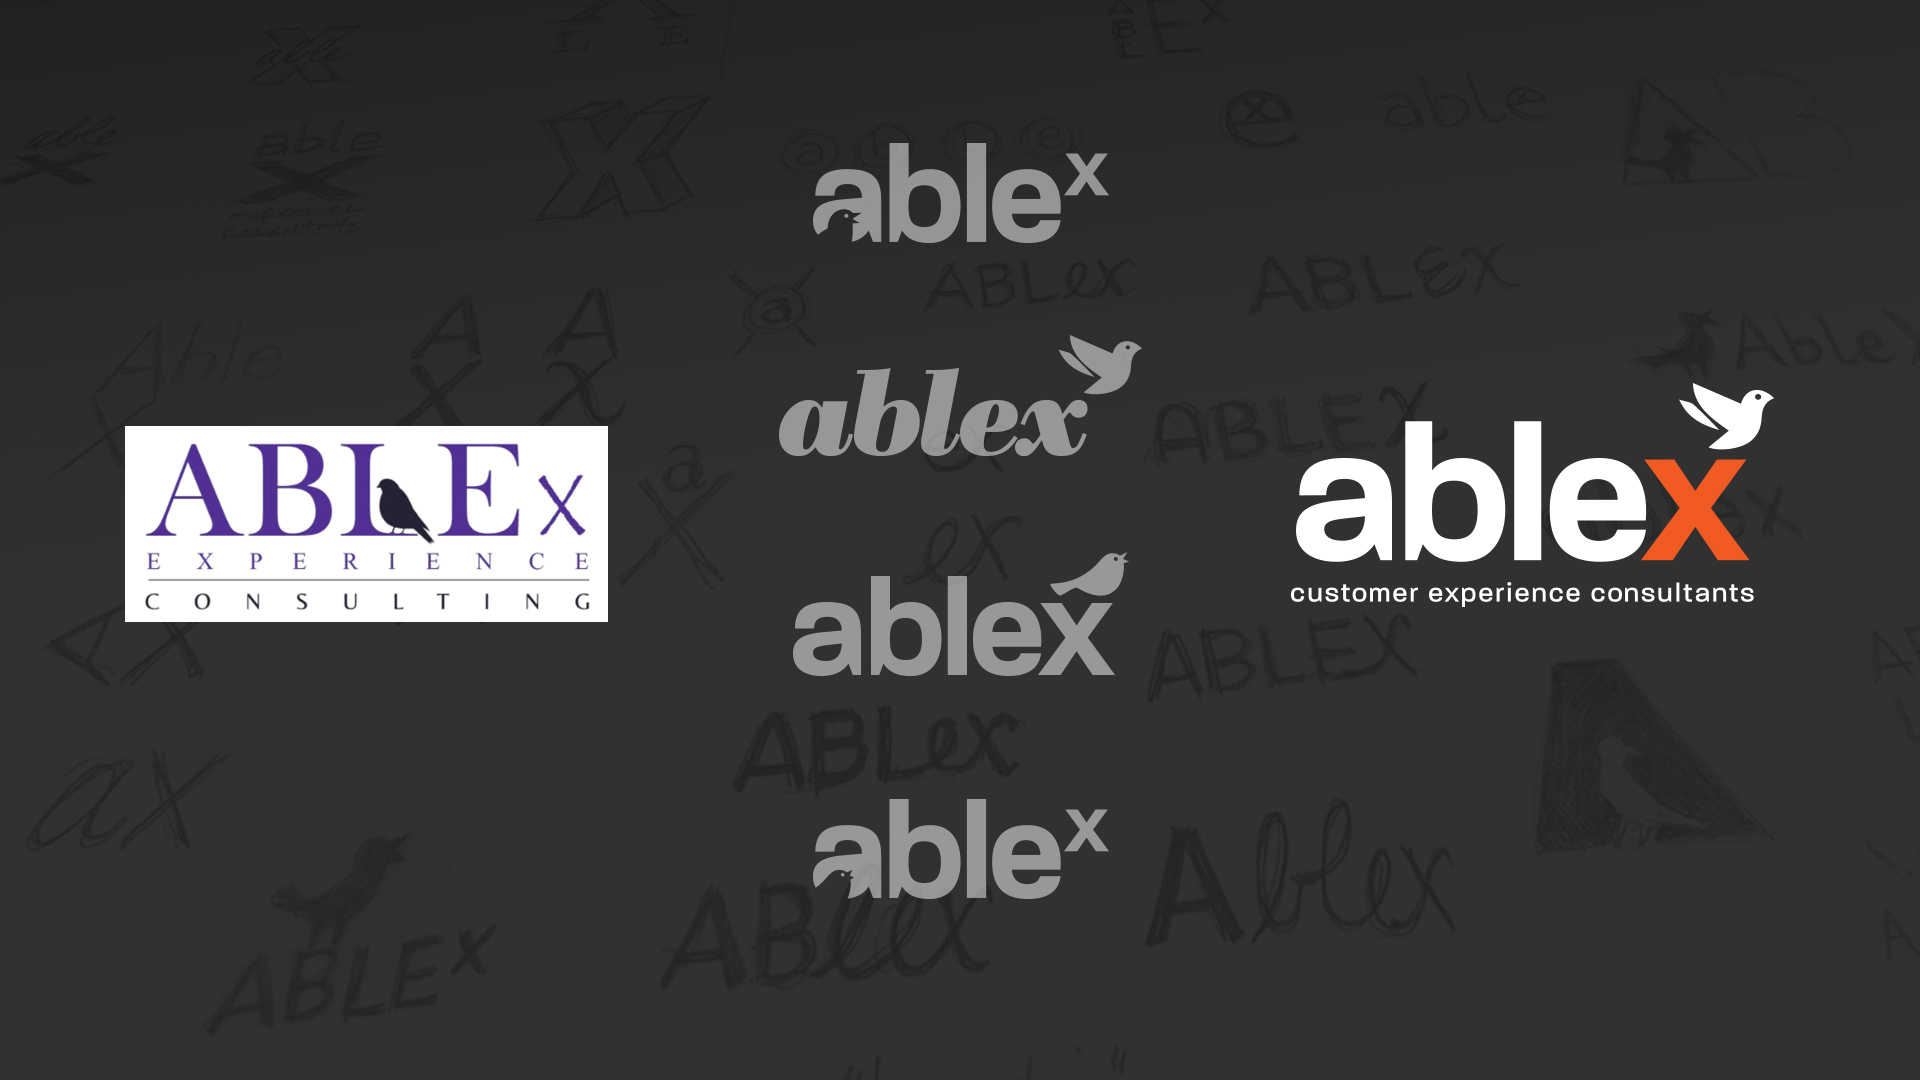 From left to right: original ABLEx logo, some early concepts, and the redesigned logo.